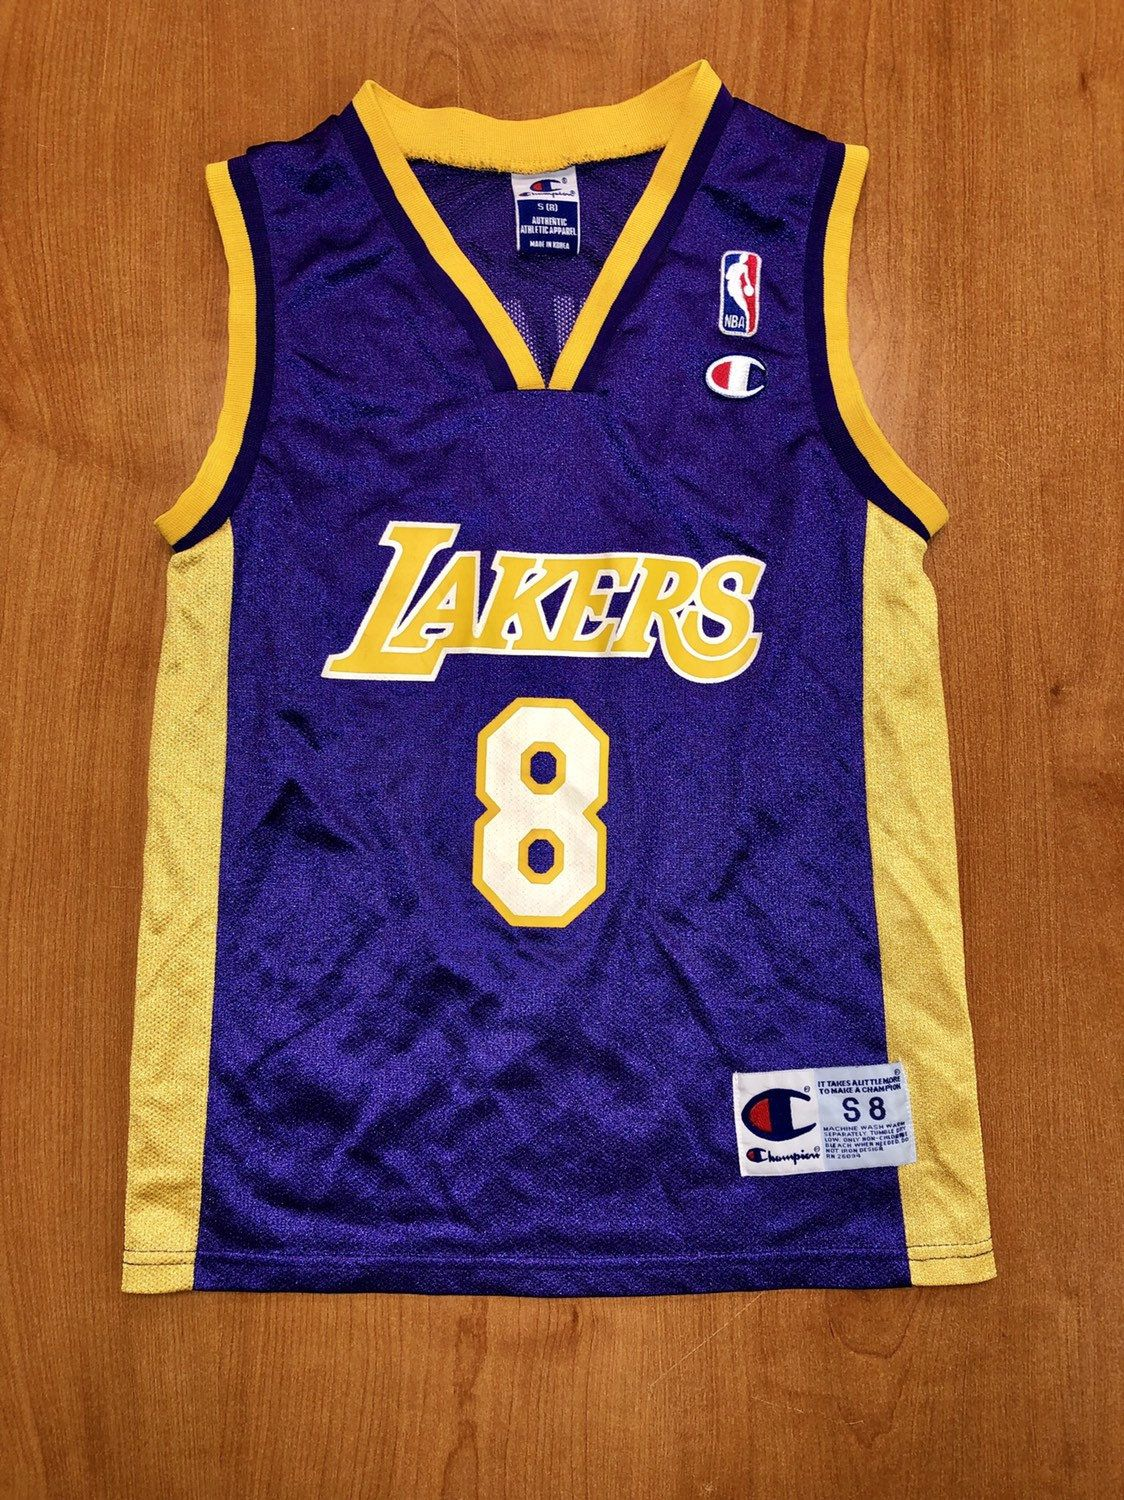 16e3bd2b526 Vintage 1999 Kobe Bryant LA Los Angeles Lakers Champion Jersey Size Youth  Small shaquille o neal magic johnson nba finals kids lower merion by ...